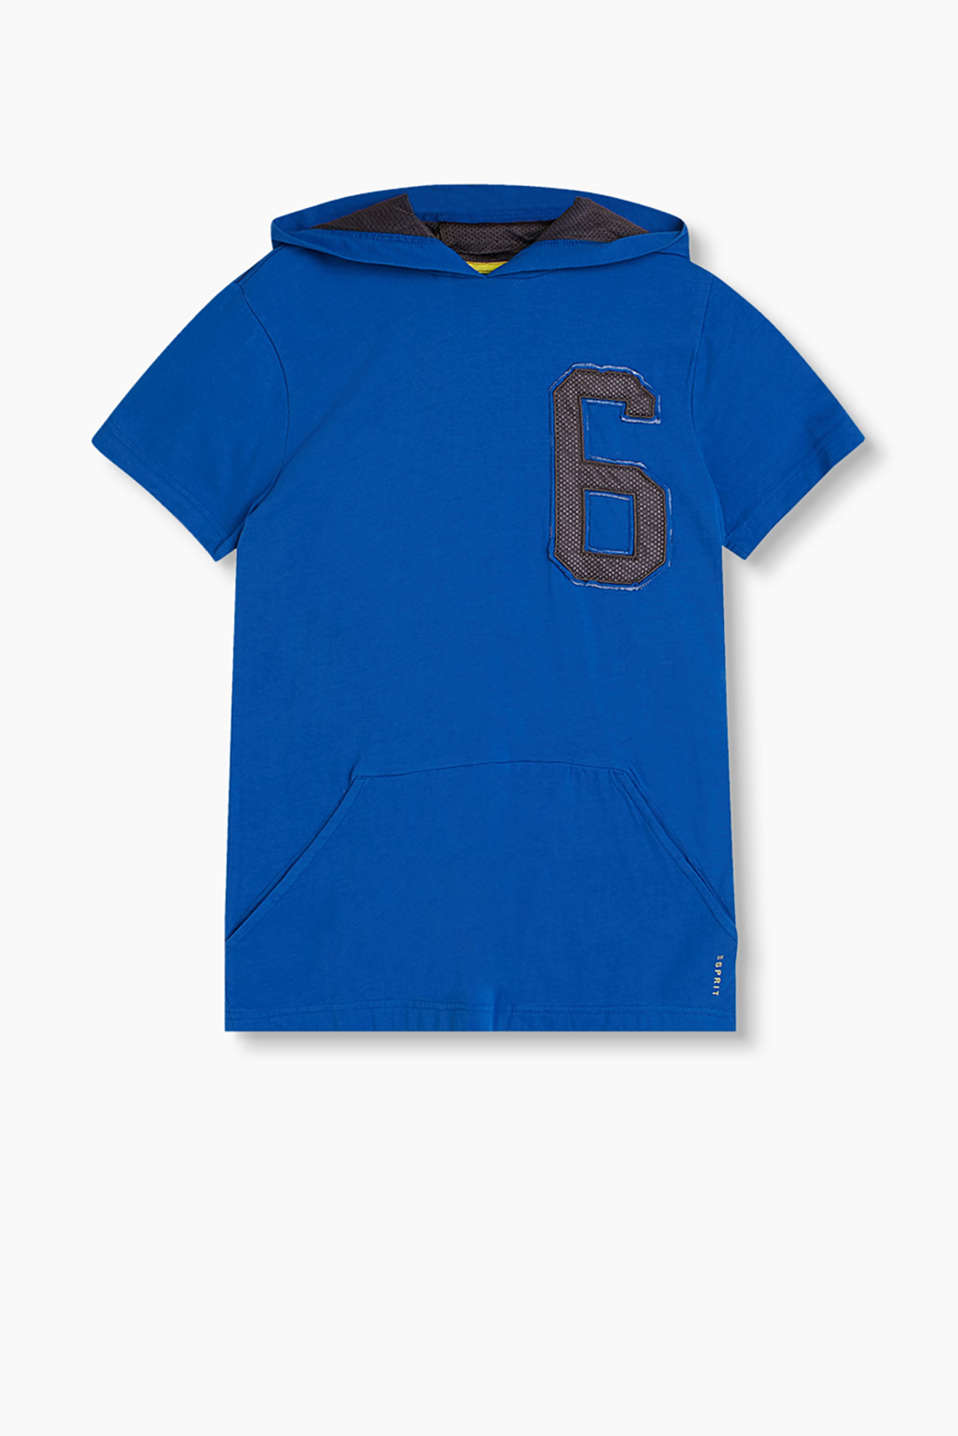 Hooded T-shirt in soft cotton jersey with a hood lining and number appliqué made of mesh